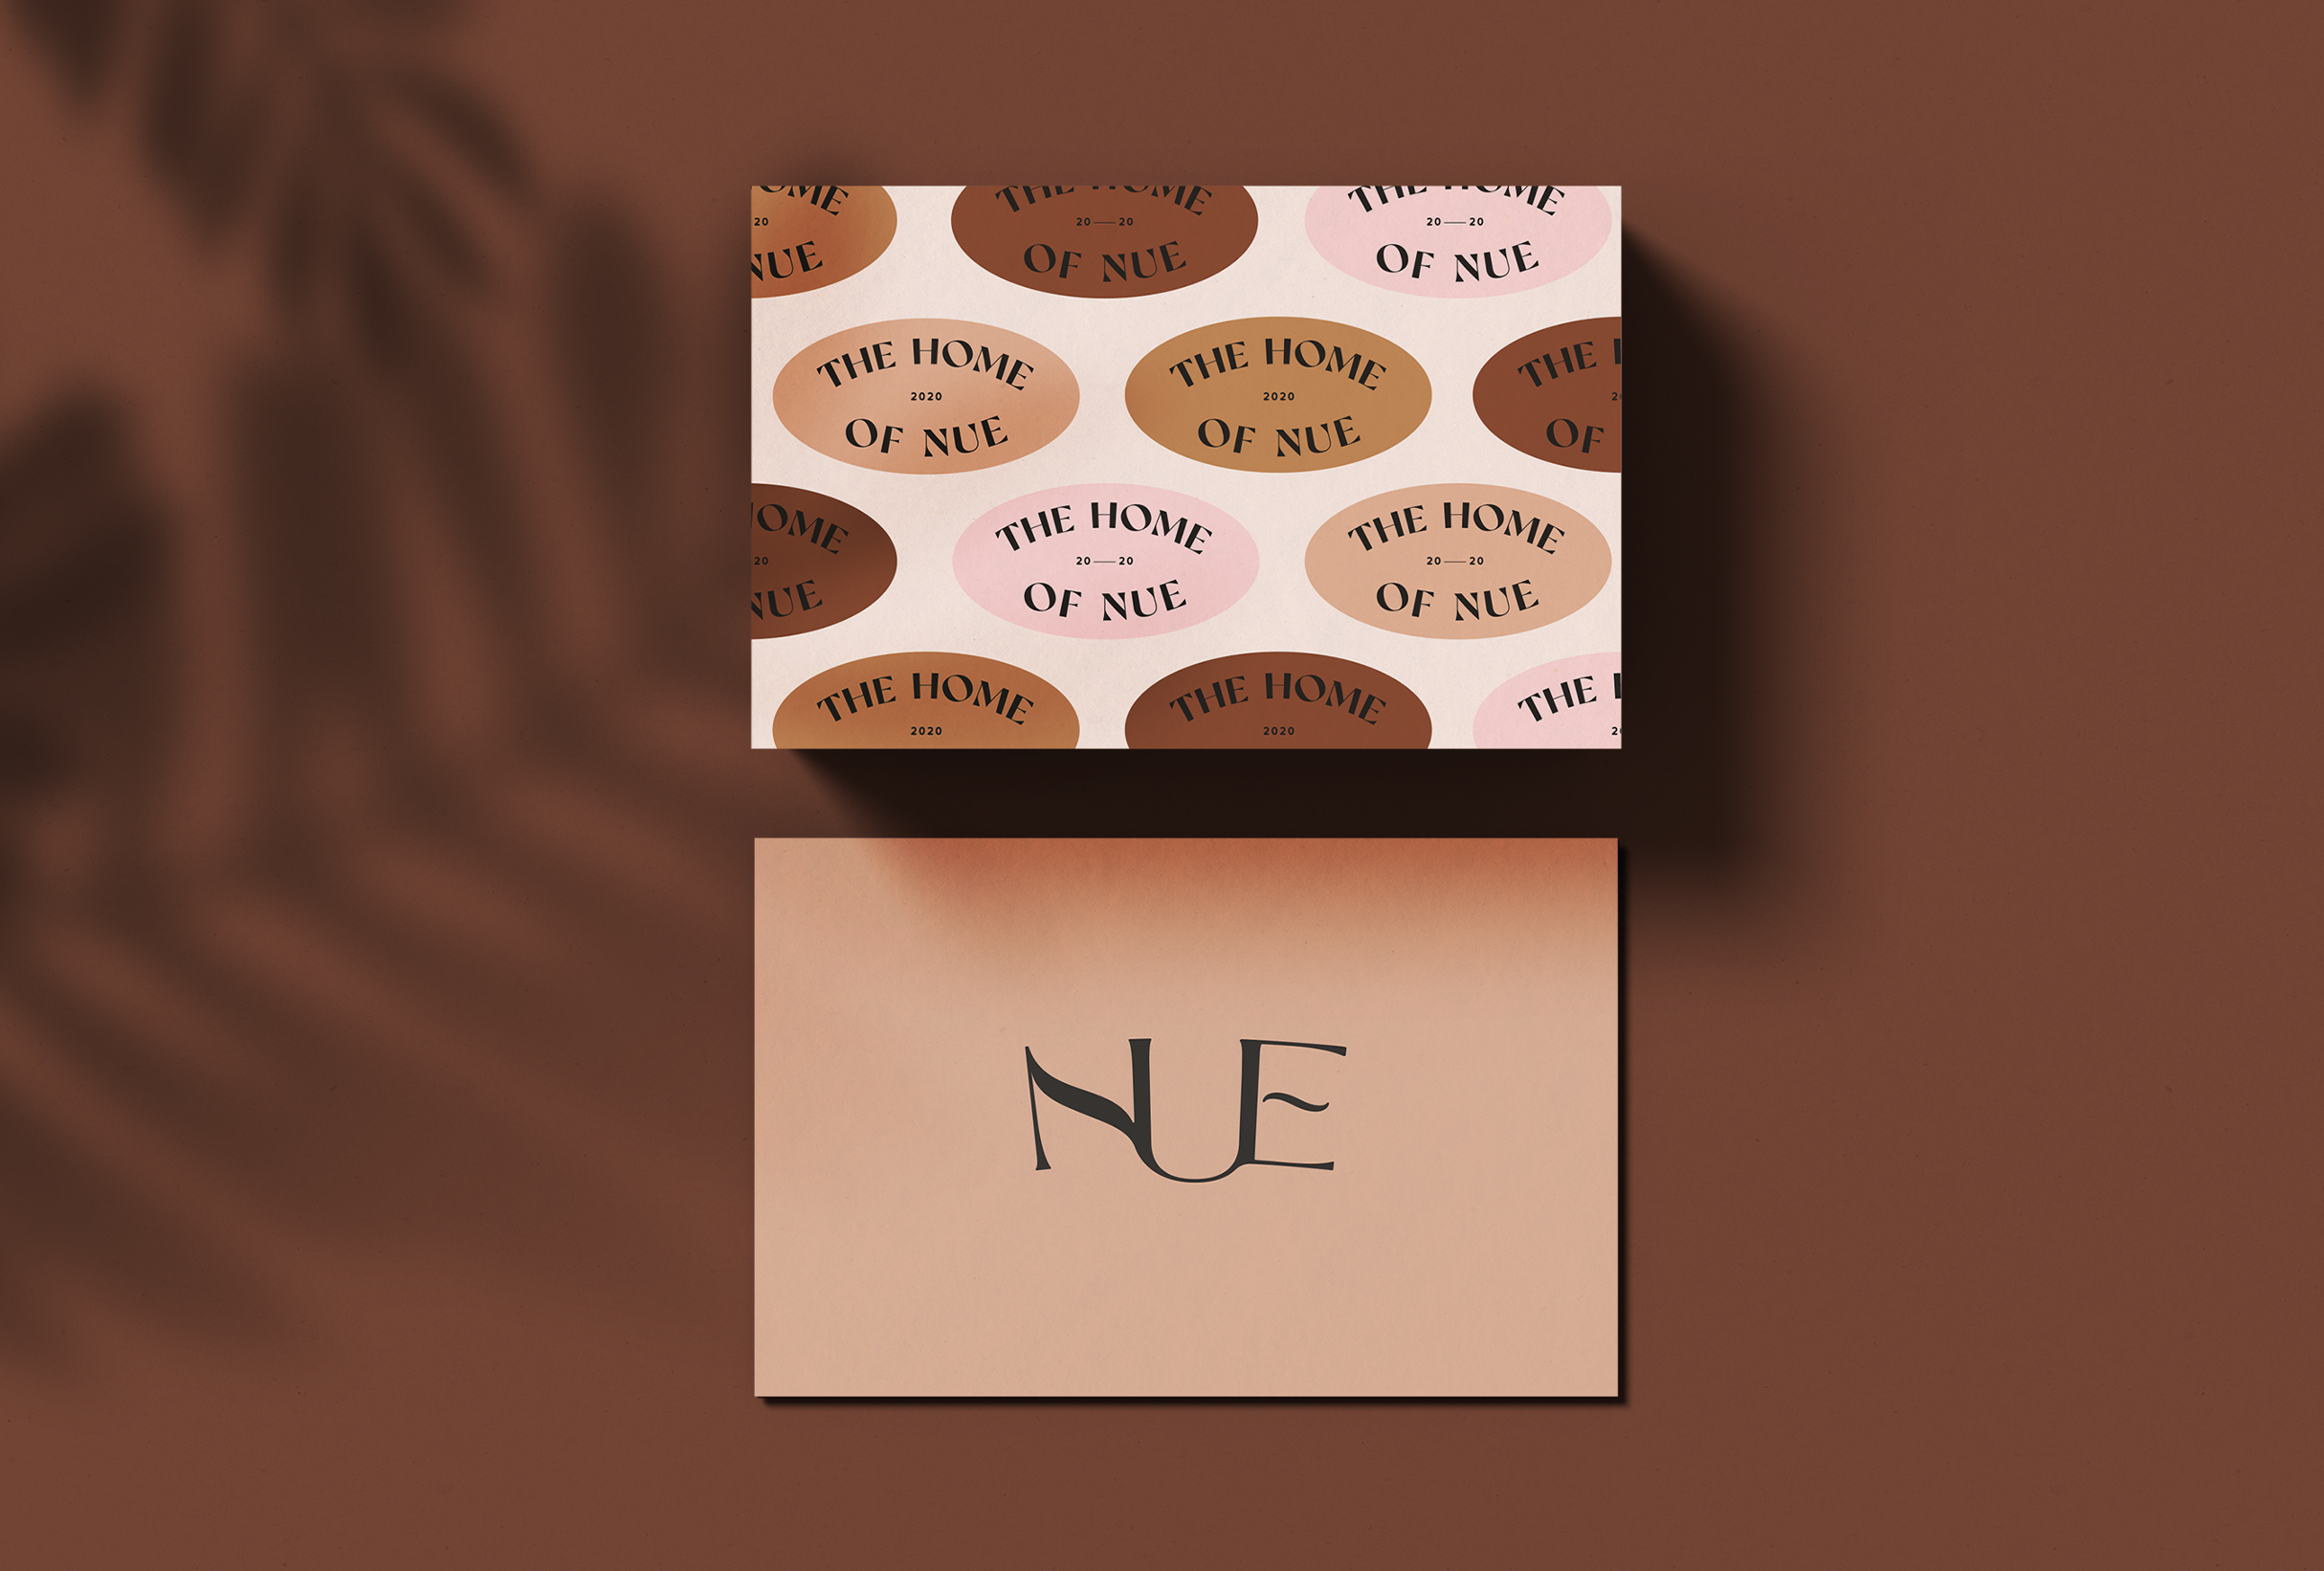 Business cards for Nue, home, beauty & lifestyle brand specialsing in nude shades for their products - designed by Wiltshire-based graphic designer, Kaye Huett